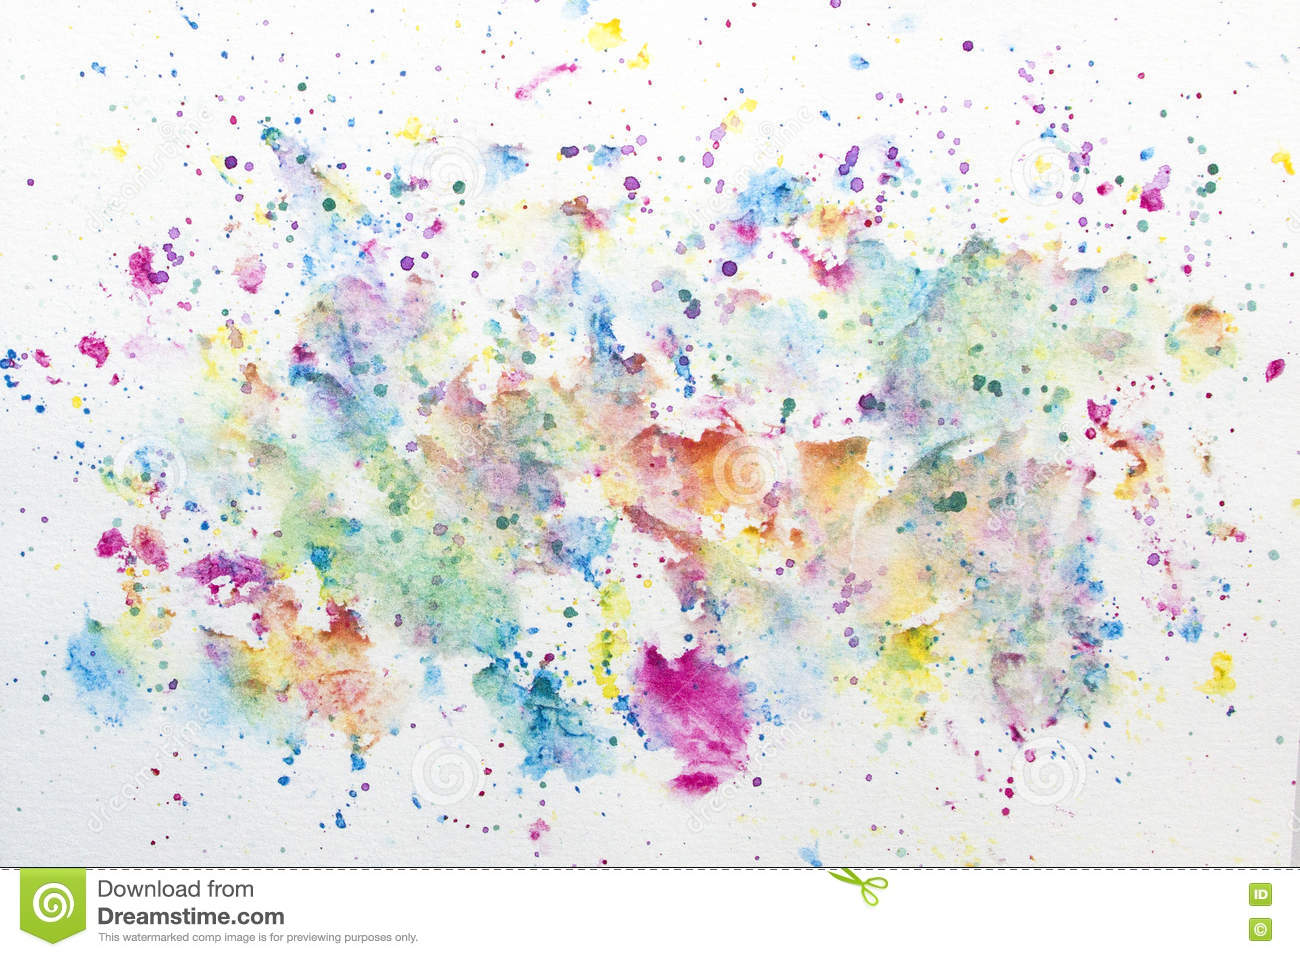 Green And White Paint Splatter Png